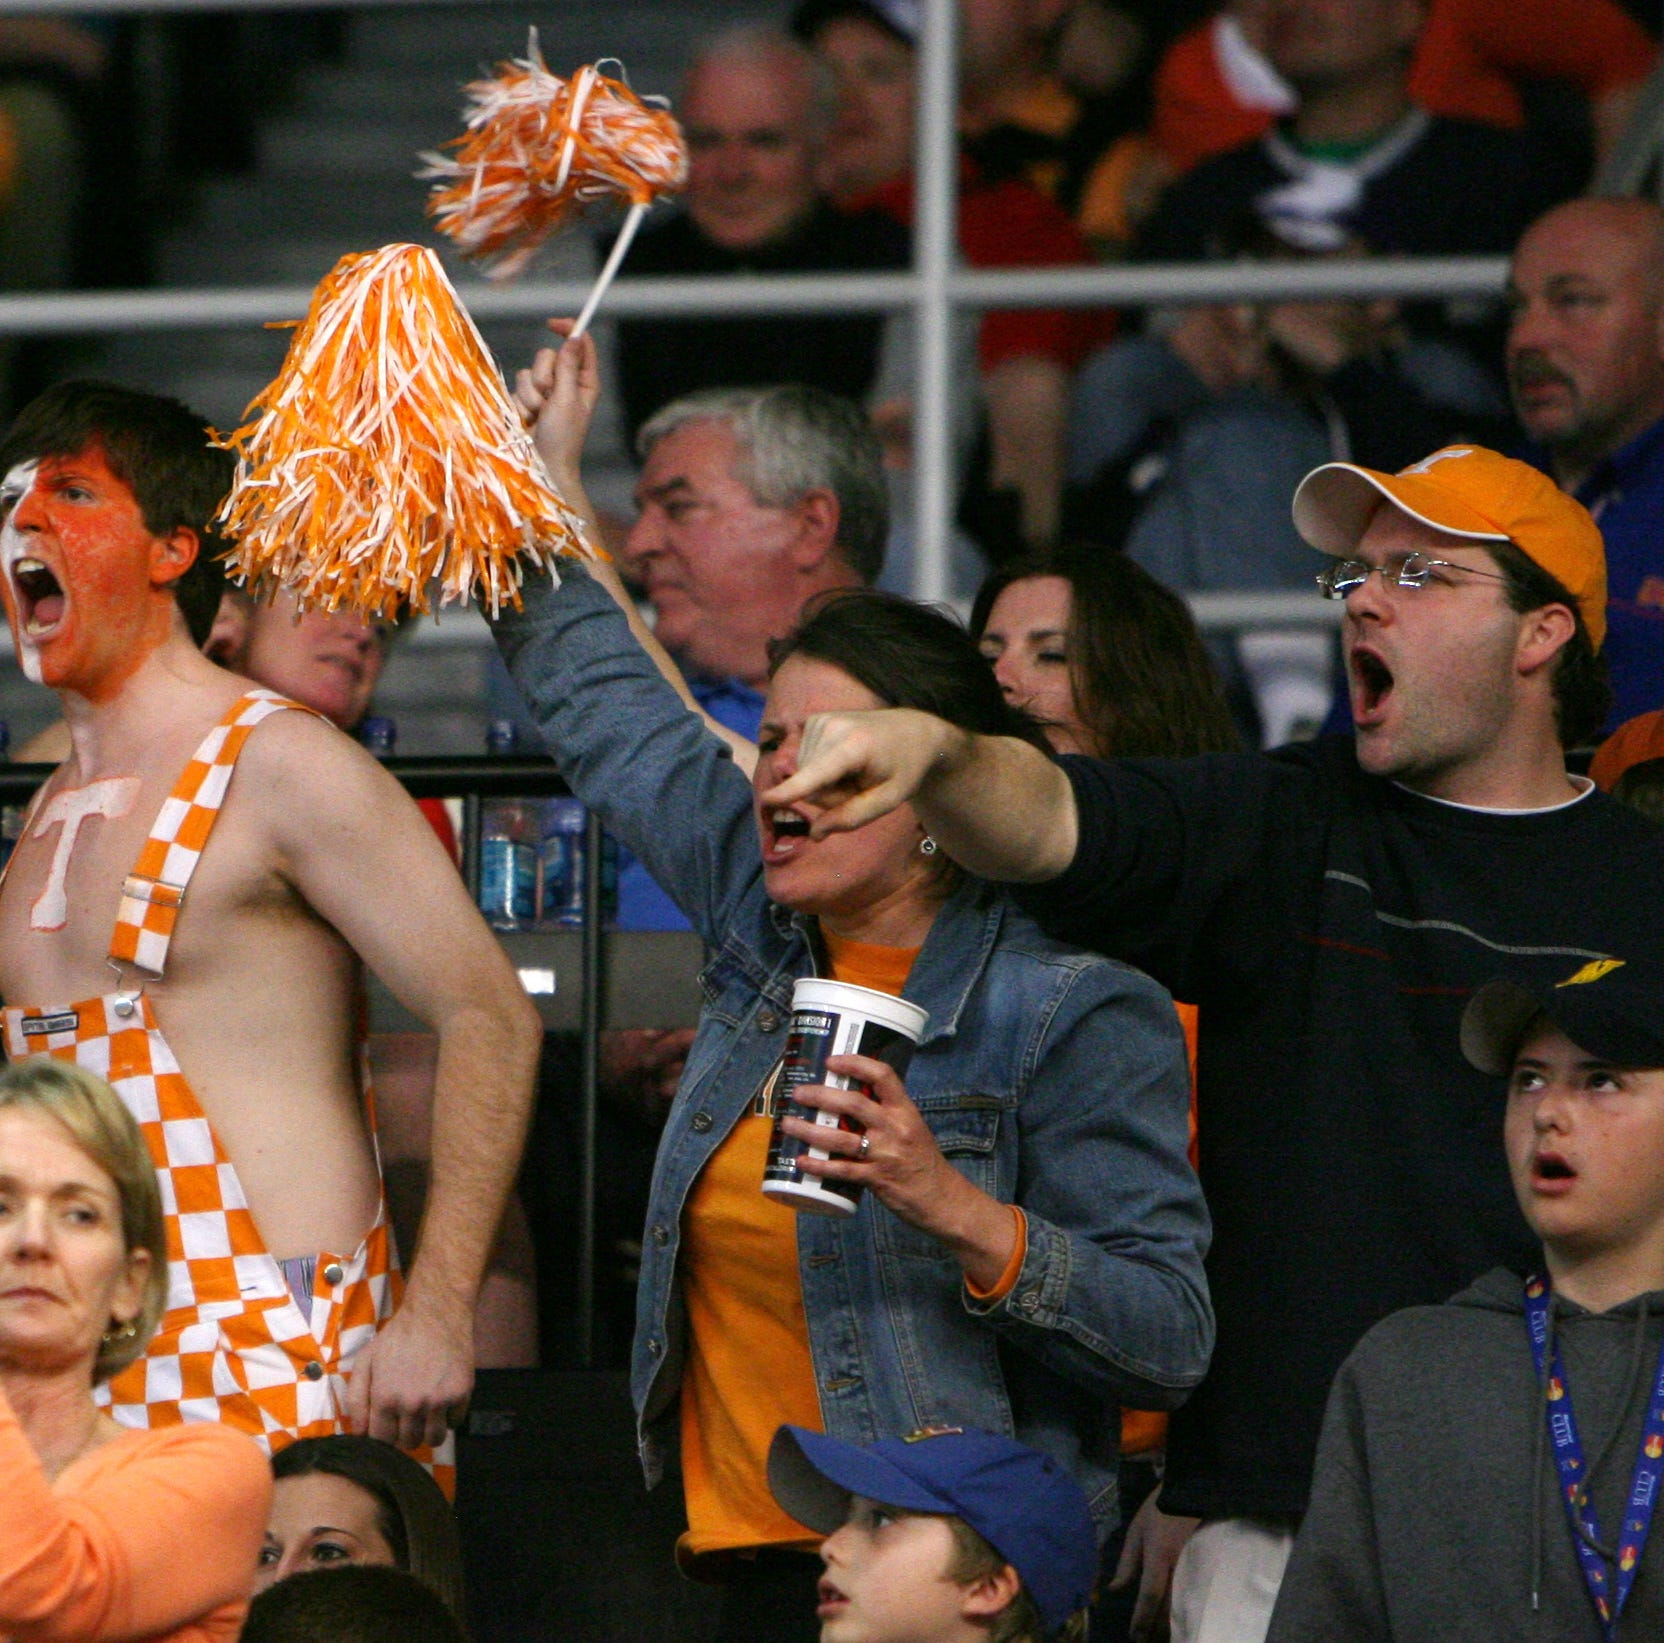 Worst survey ever trashes Knoxville as a lousy city for college basketball